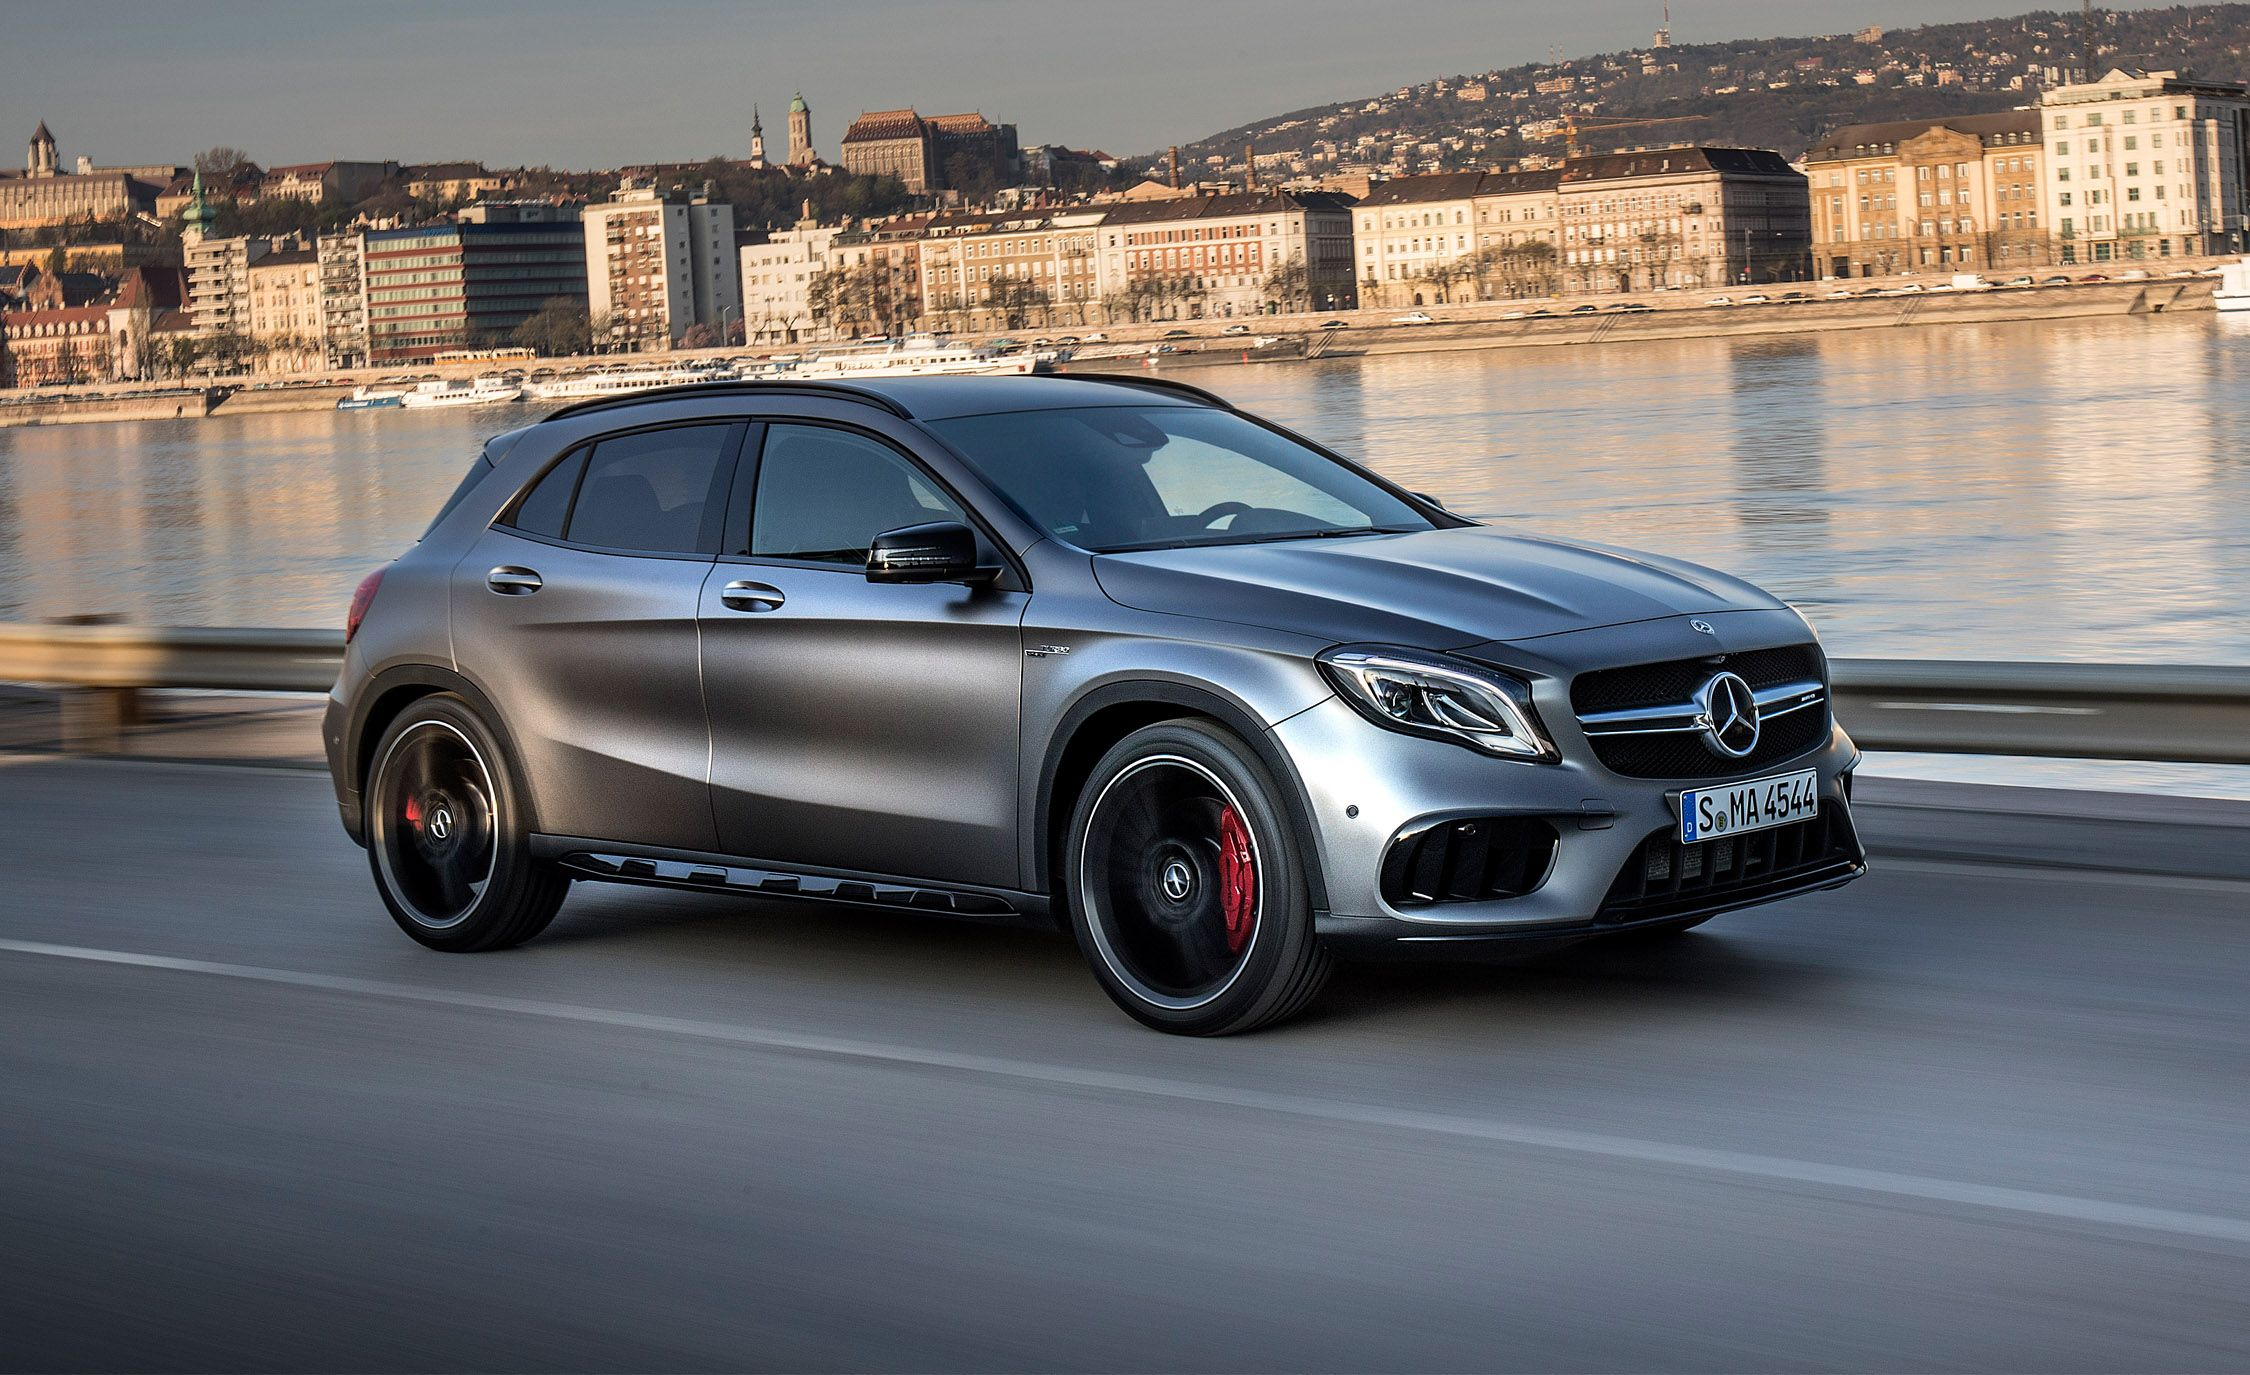 2017 Mercedes Amg Cla45 4matic And 2018 Gla45 4matic With Images